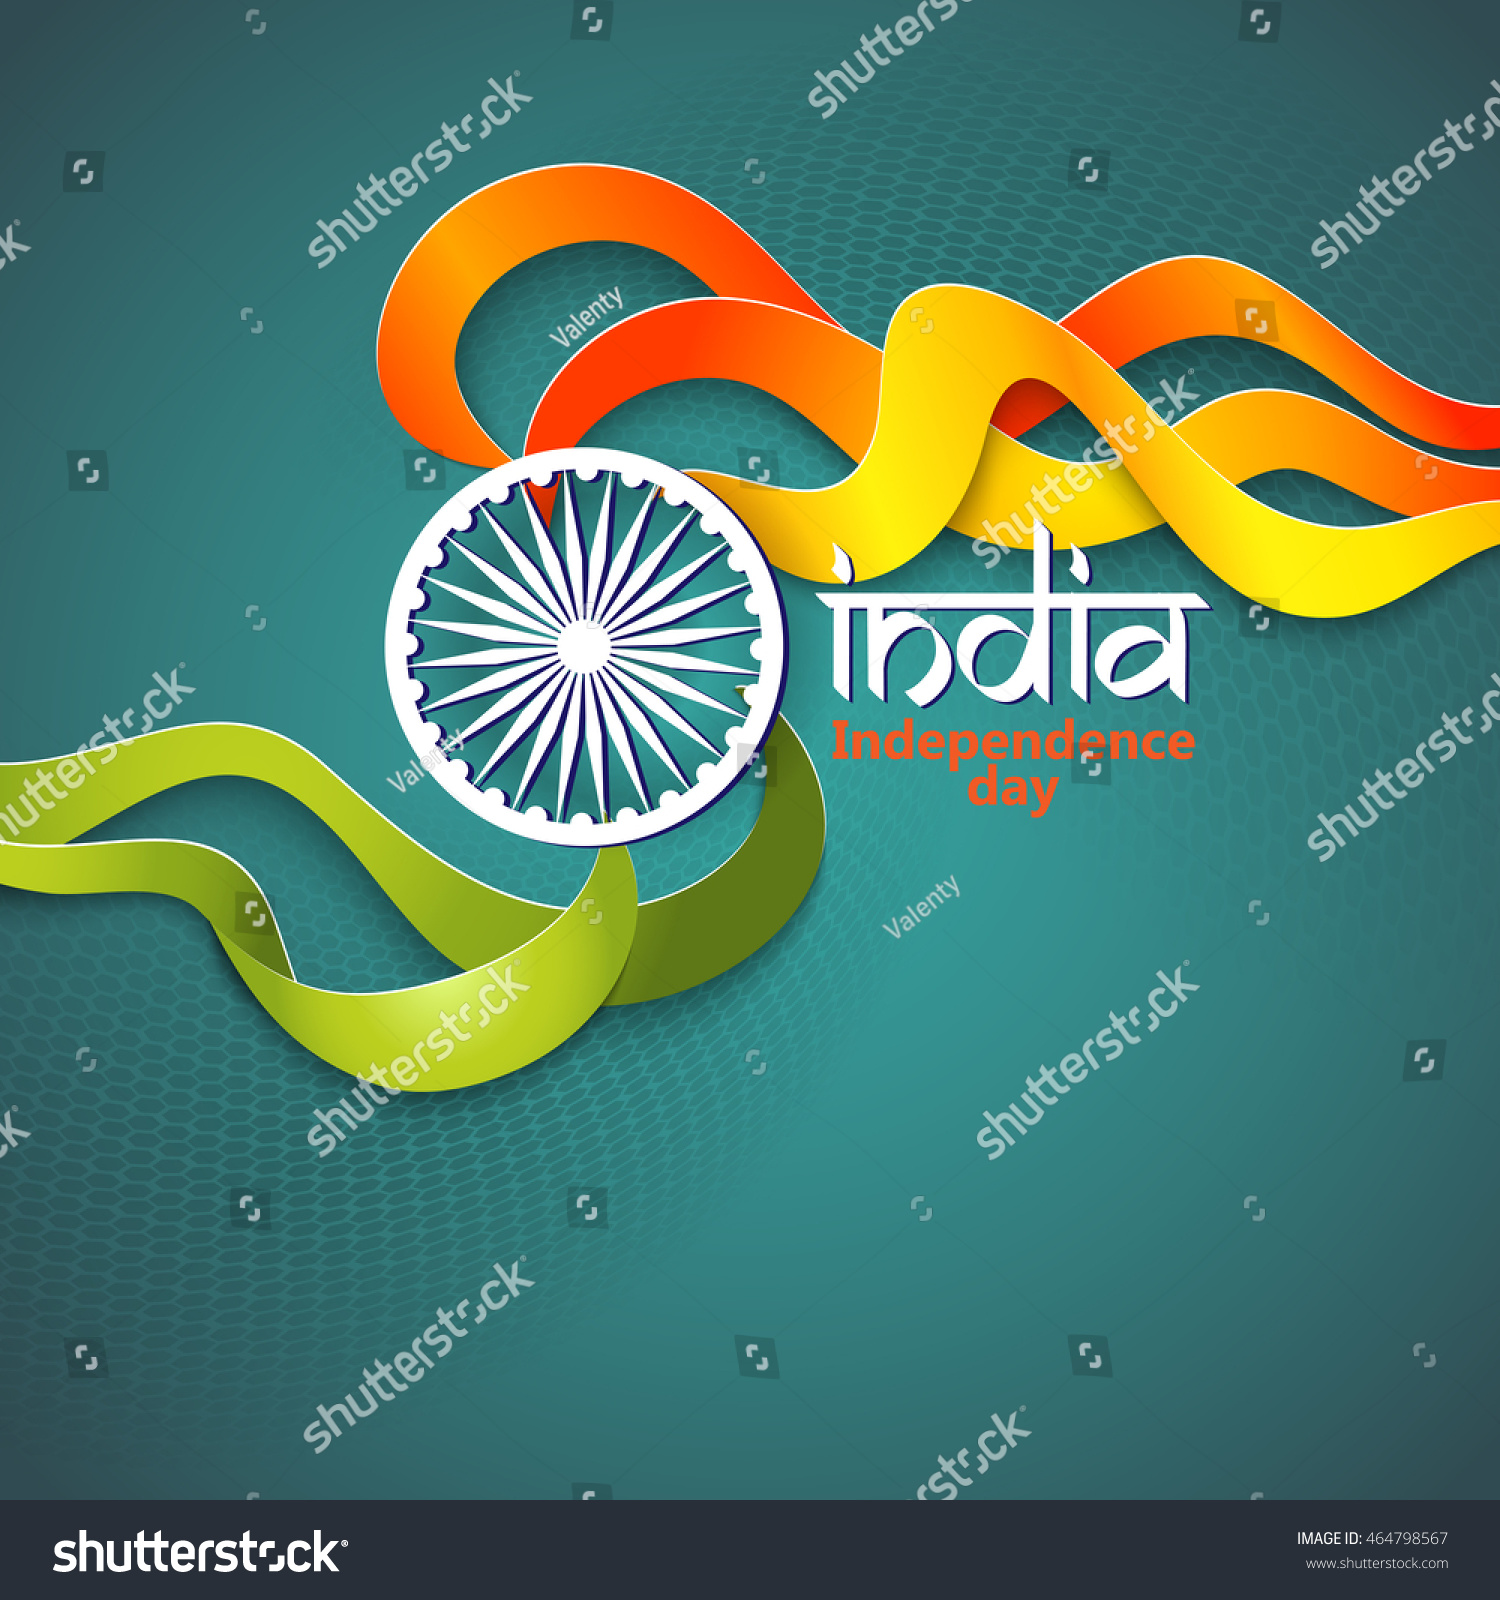 Colors website ashoka - Flag Colors India Theme For Republic Day Indian Independence Day Concept Background With Ashoka Wheel